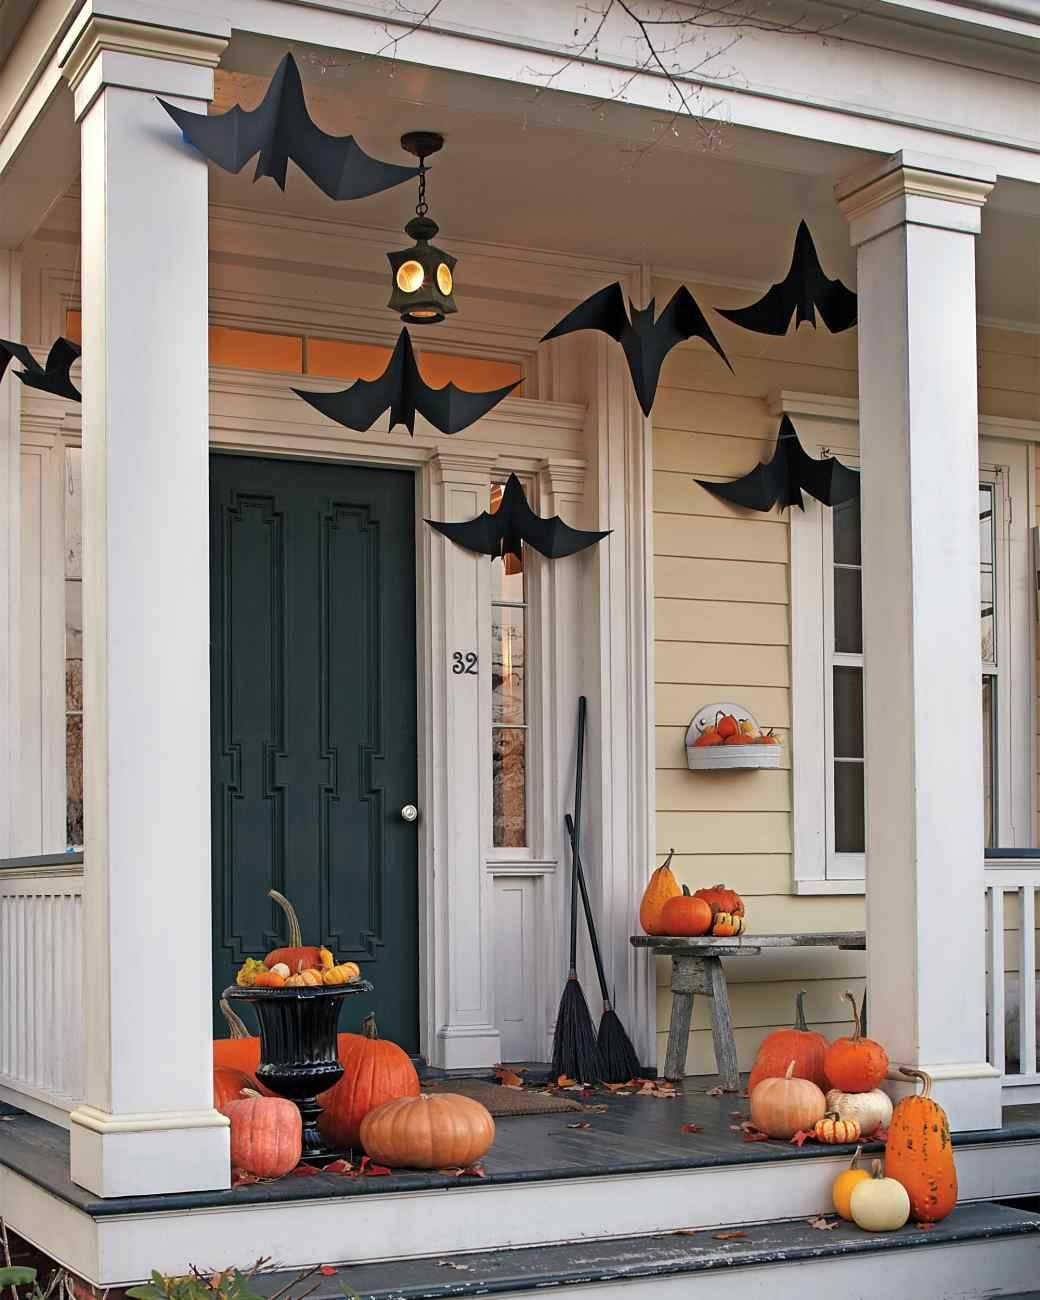 "<p>Using <a href=""http://www.marthastewart.com/852559/hanging-bats"" rel=""nofollow noopener"" target=""_blank"" data-ylk=""slk:this template"" class=""link rapid-noclick-resp"">this template</a> from Martha Stewart, making these hanging bats is a cinch! Trust us, this will be much easier than wrangling the real thing. <i>(Photo: Martha Stewart)</i></p>"